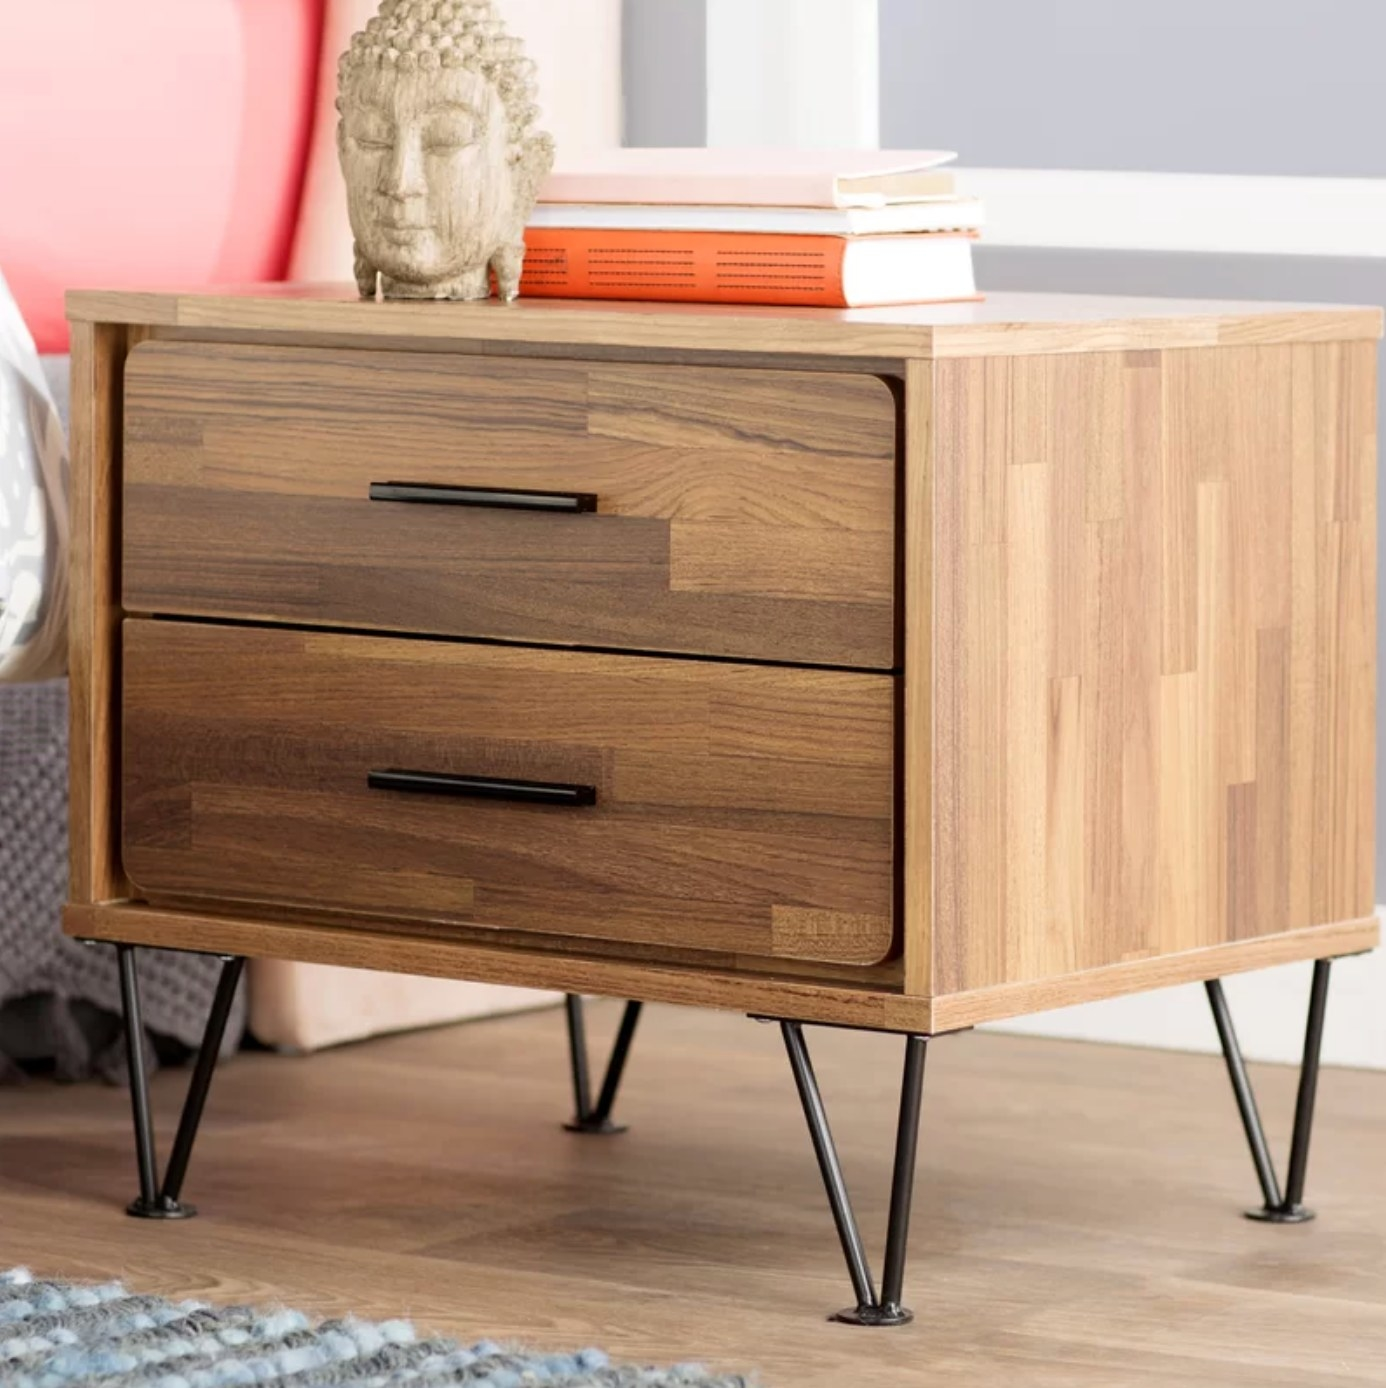 The two-drawer nightstand in walnut wood with metal legs